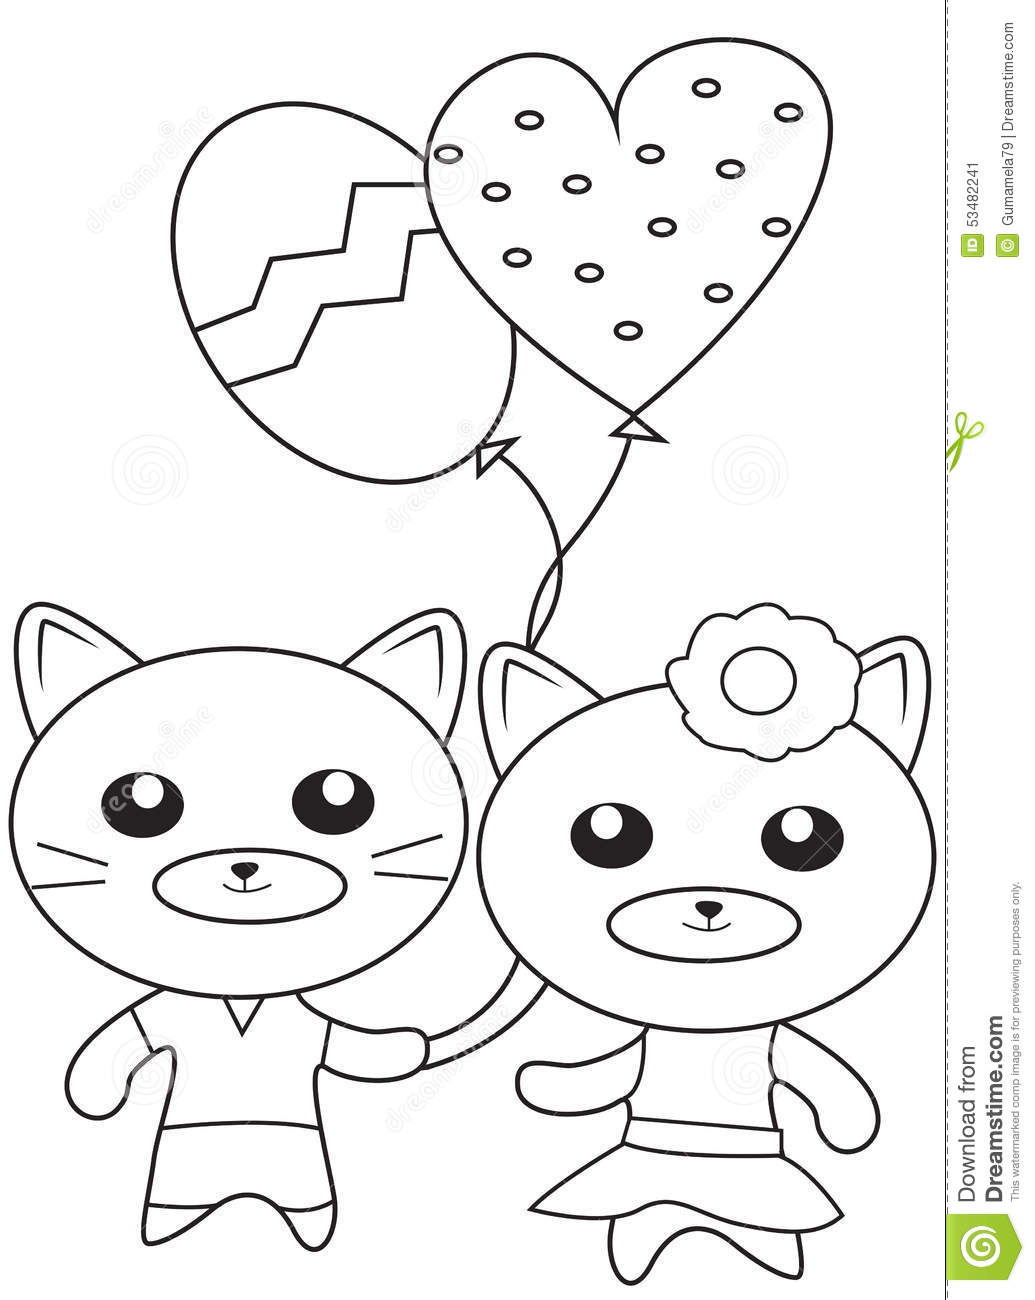 kittens with balloons coloring page stock illustration image